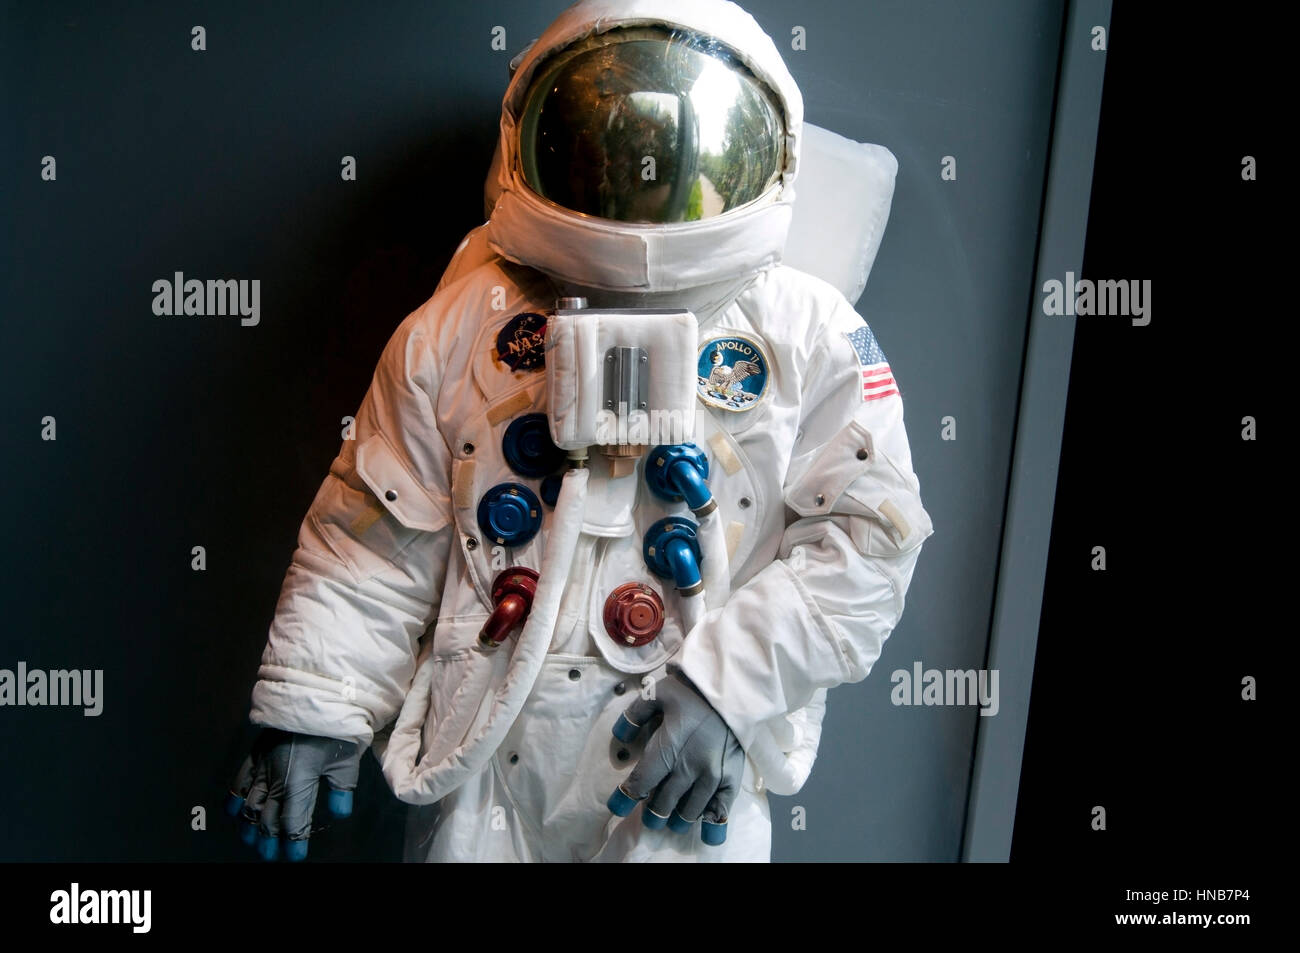 space suit shown for tourists in a museum - Stock Image